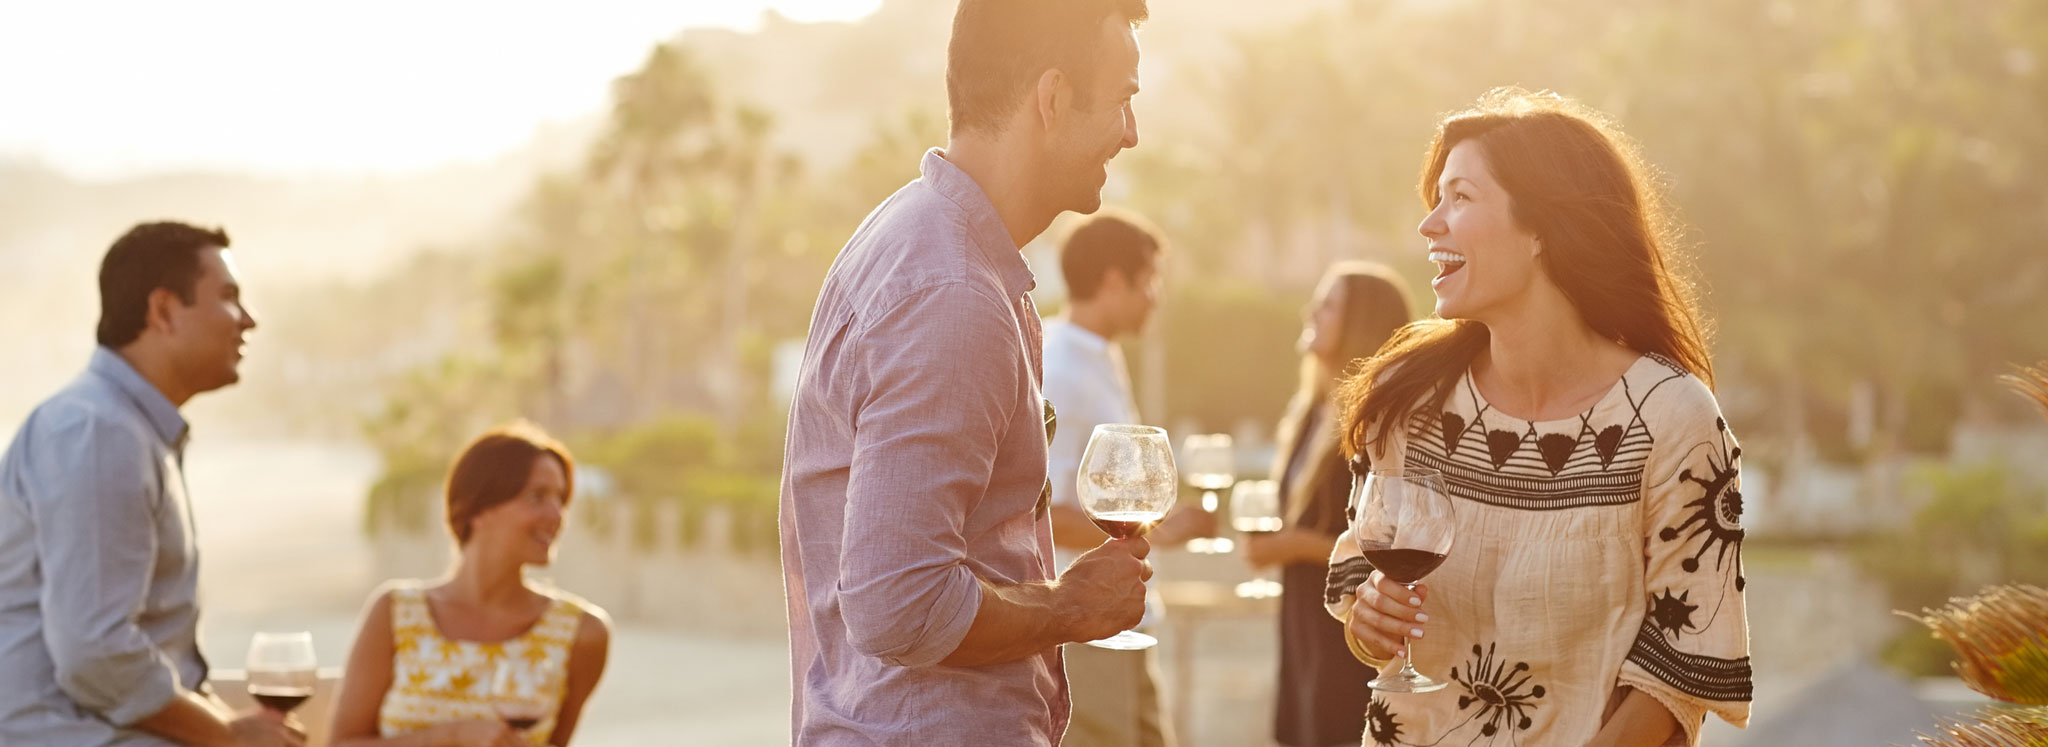 Man and woman laughing while holding glasses of wine